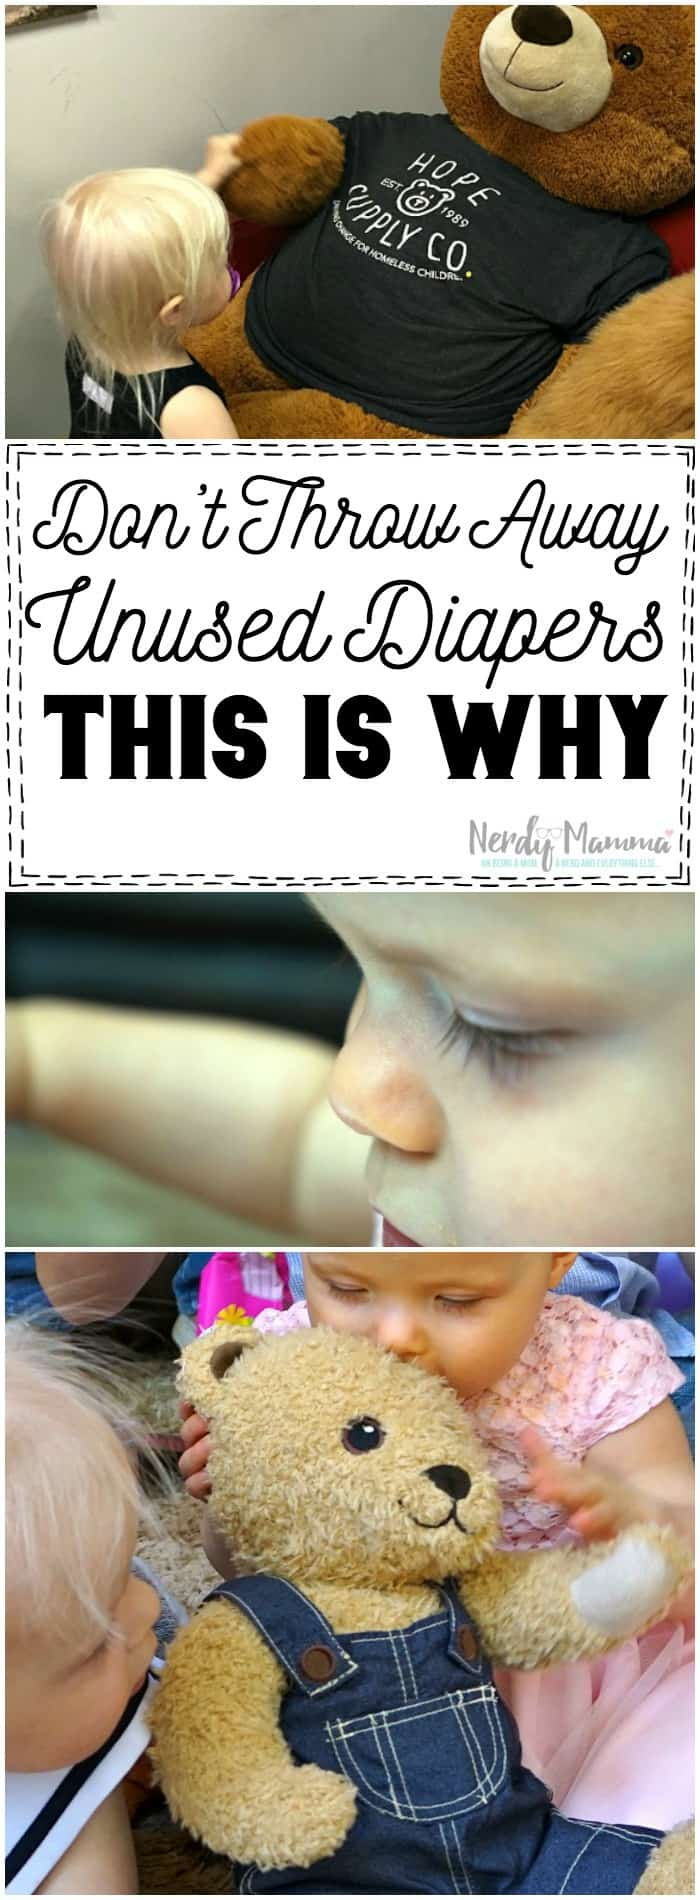 This mom's ideas on why NOT to throw away your unused diapers...well, I wish I'd known before.